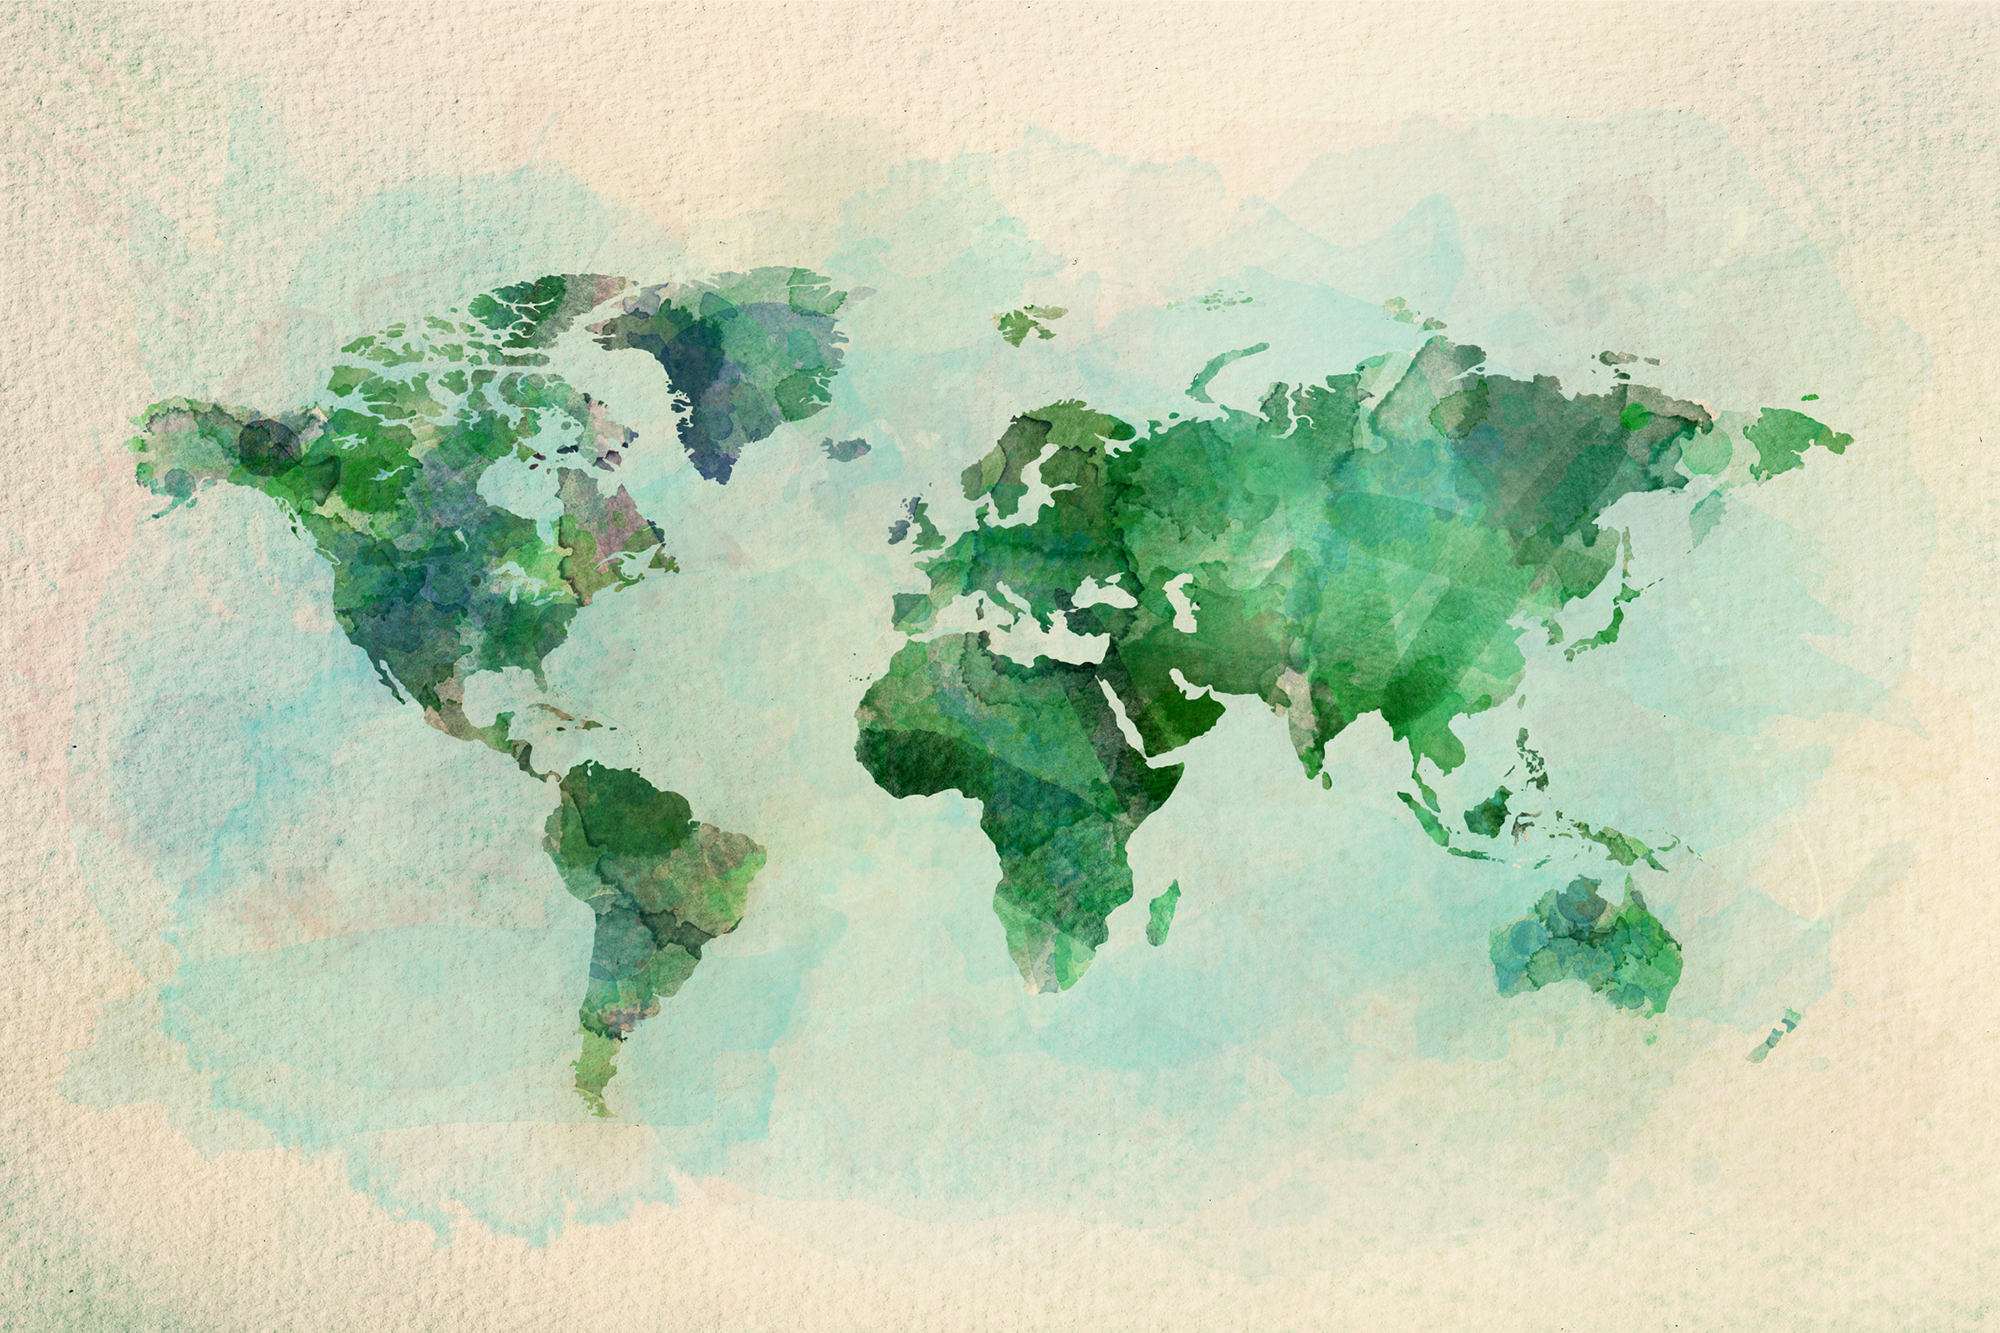 In the midst of COVID-19, Penn sustains a global mission